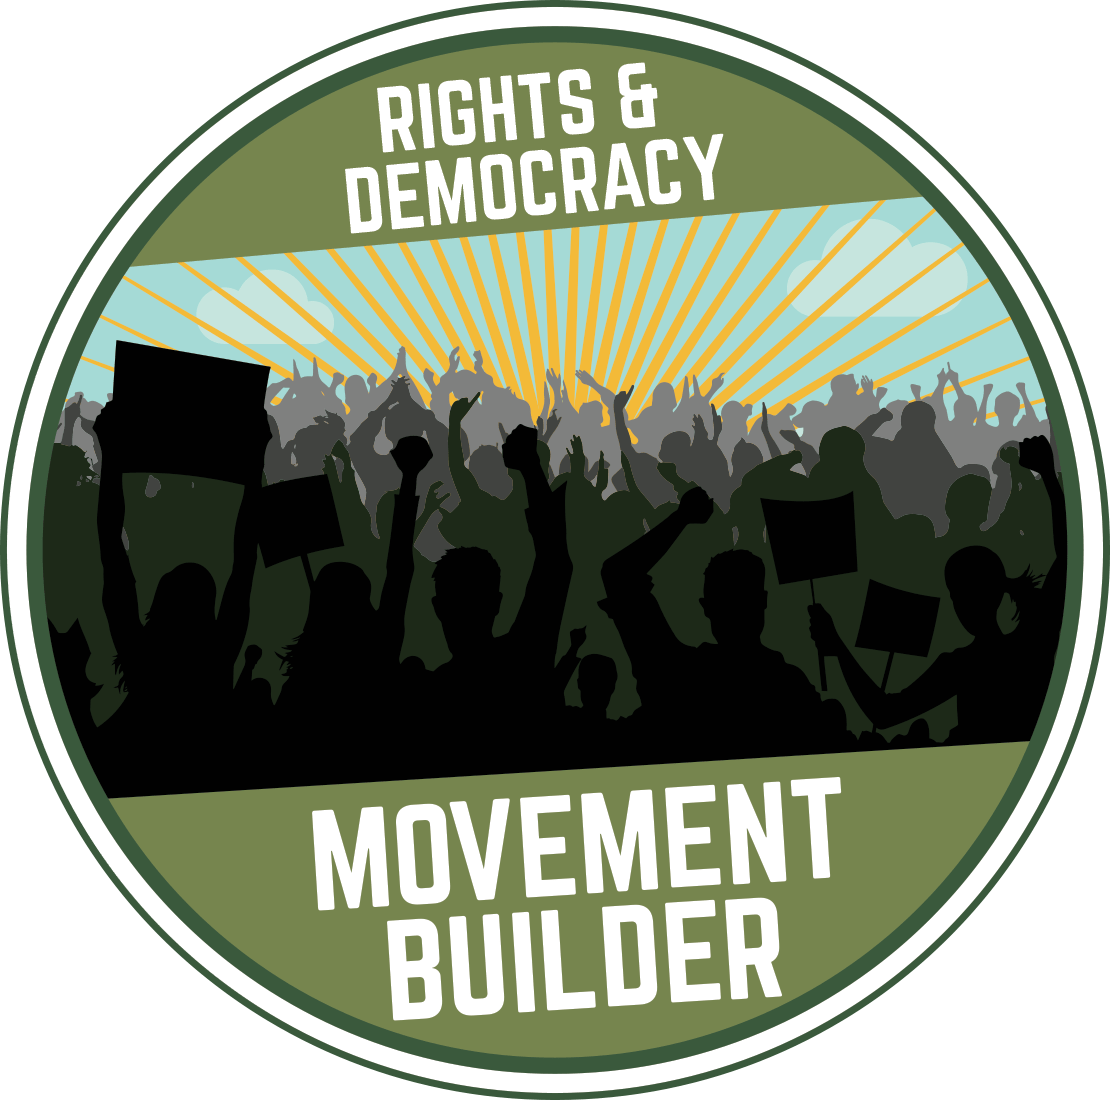 Rights & Democracy Movement Builder Award